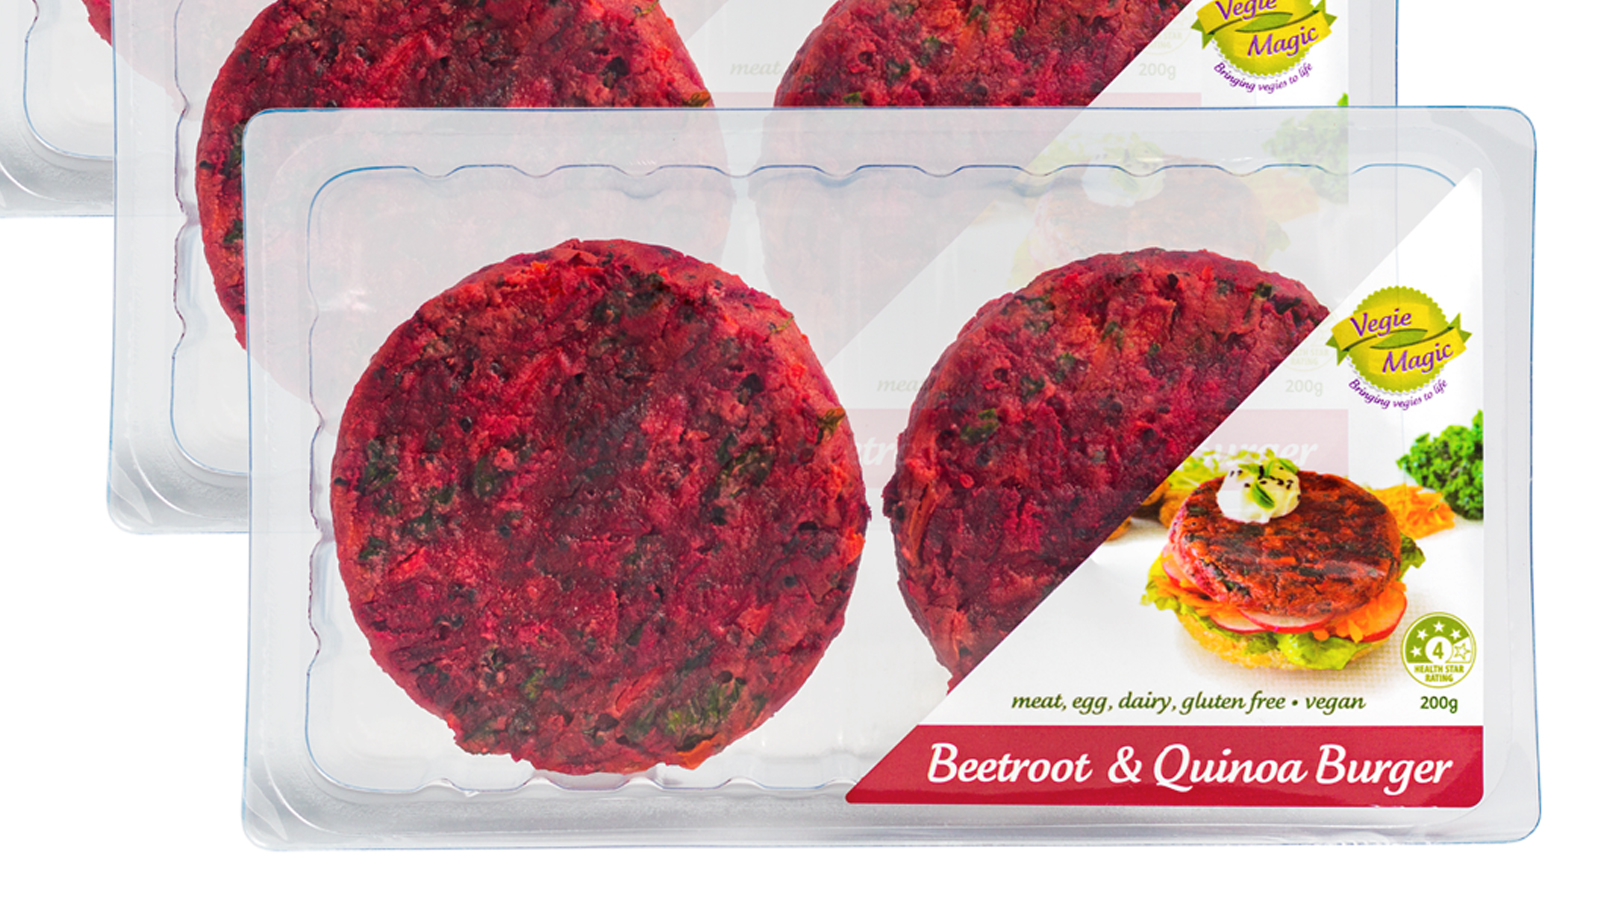 Vegie Magic Beetroot & Quinoa Vegan Patties - Retail Pack